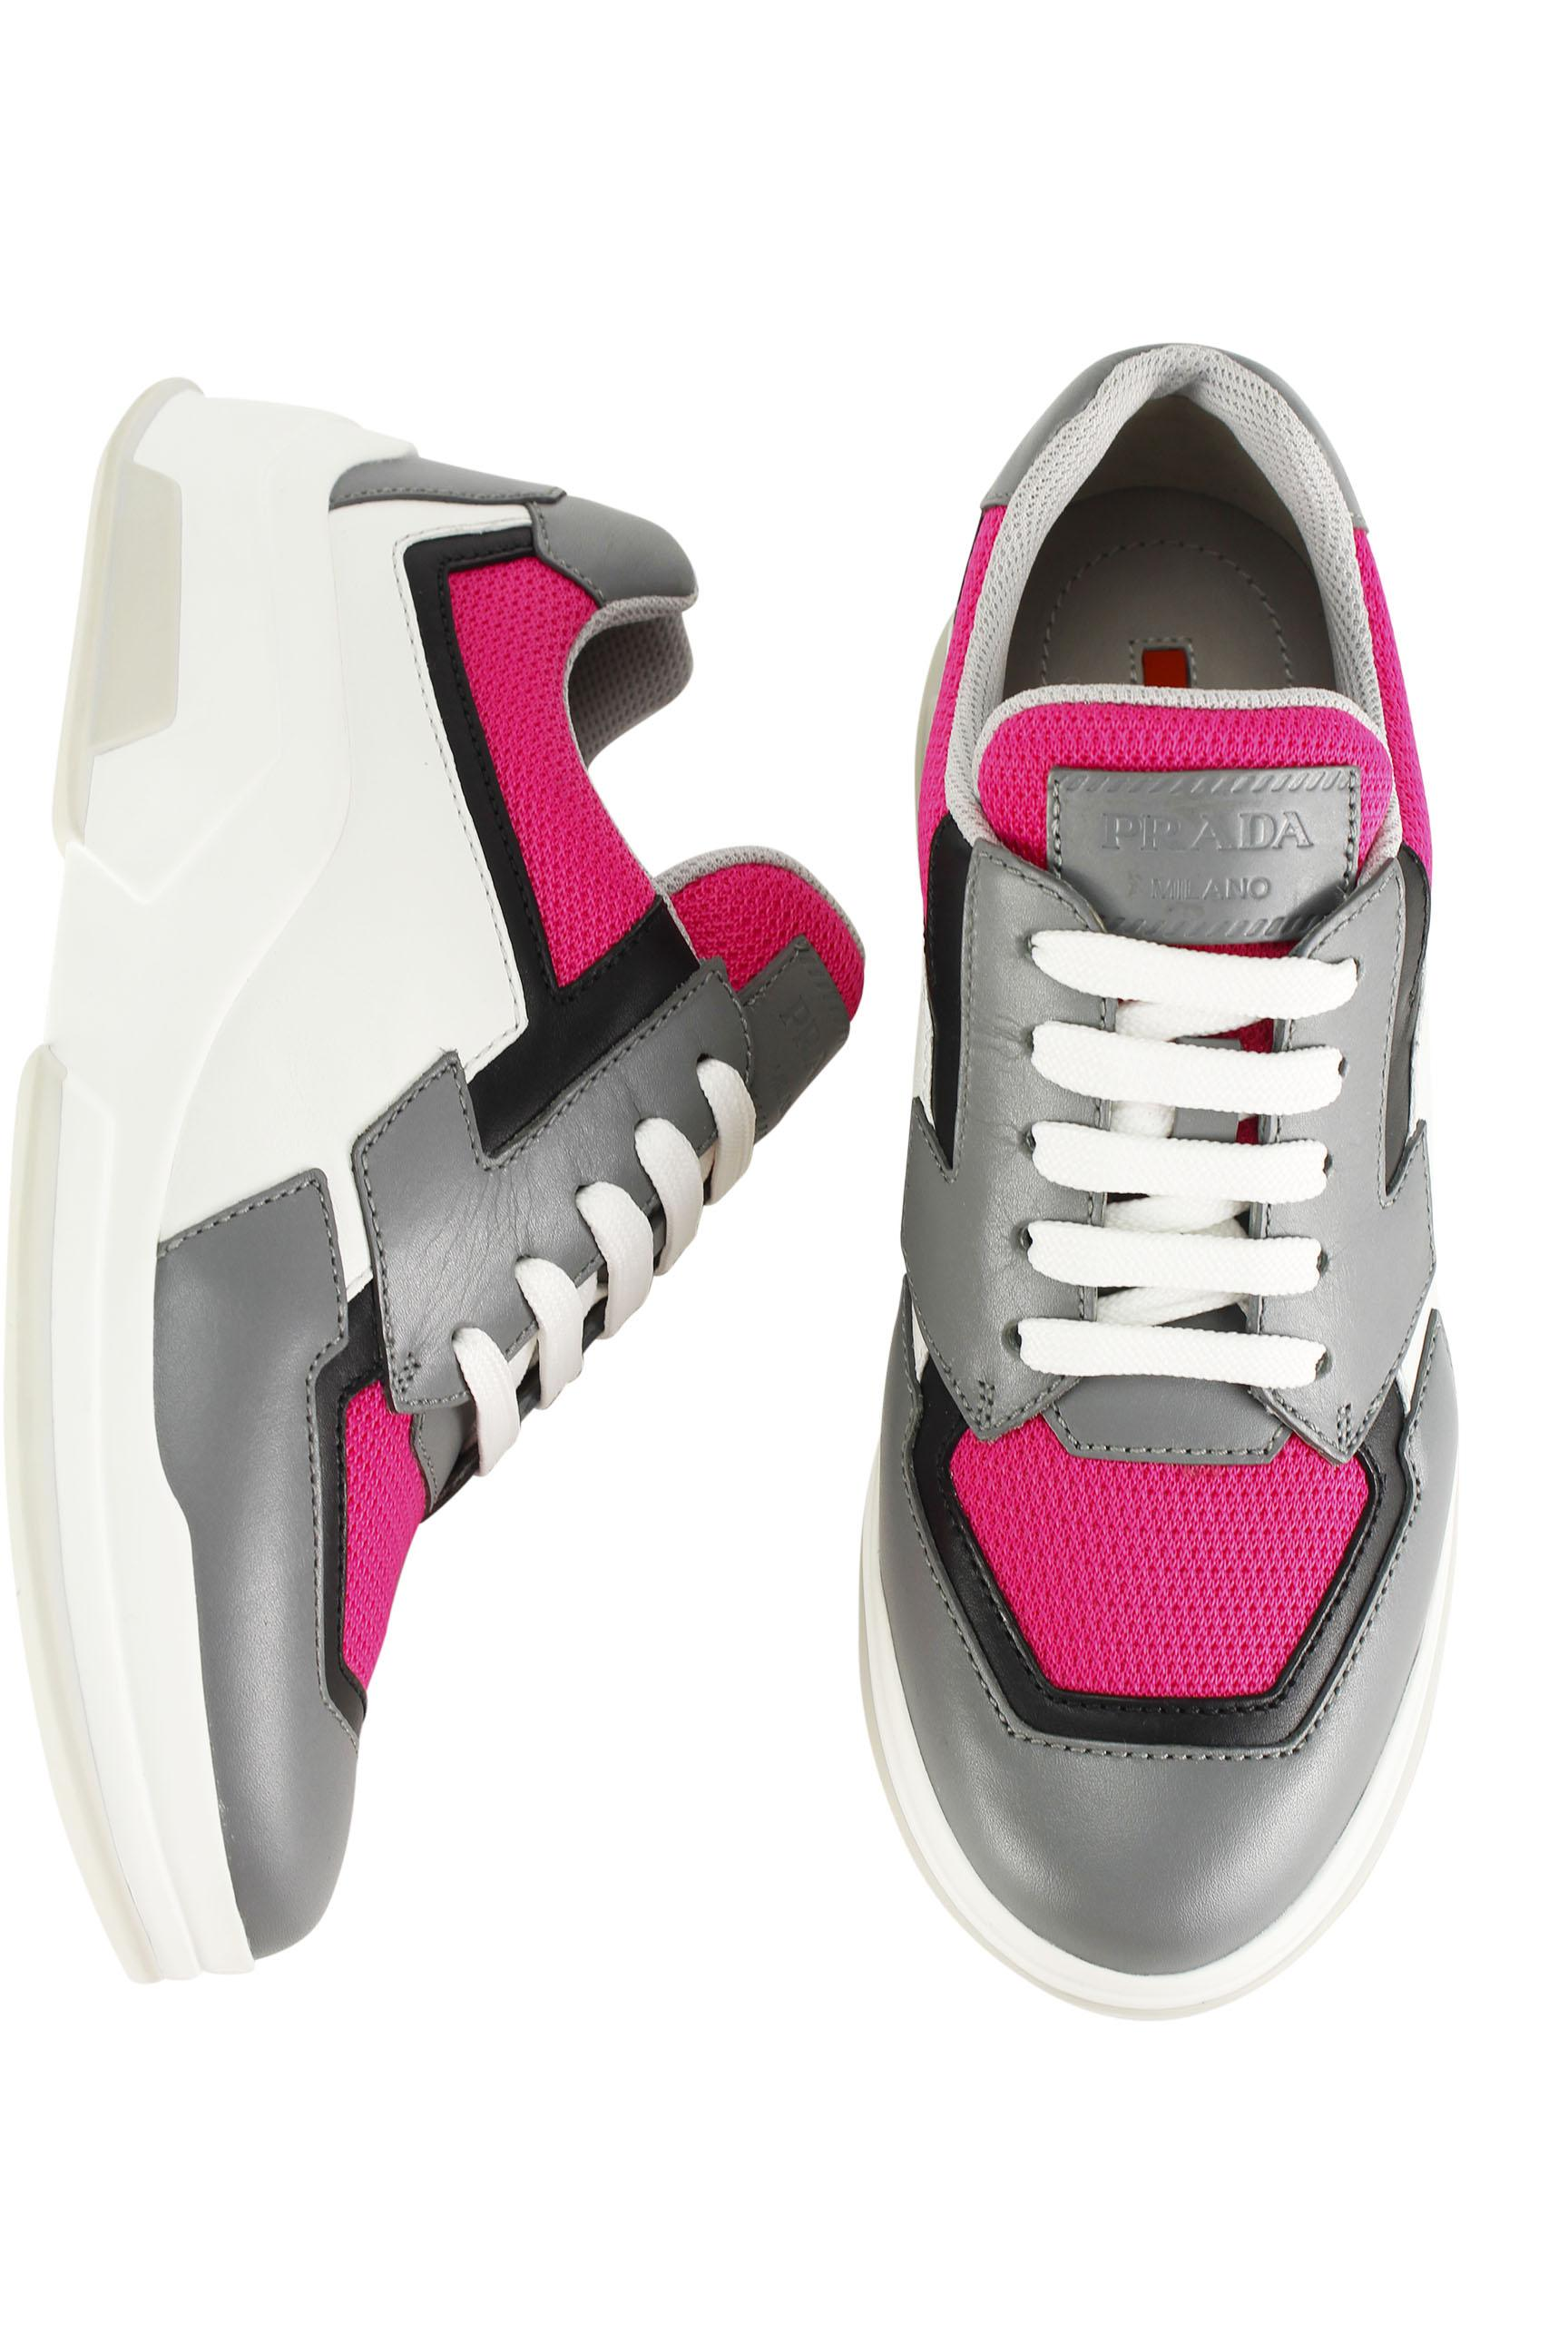 Prada Womens Fashion Sneakers 3e596430rm Pink Athletic Shoes On Sale 56% Off | Athletic On Sale